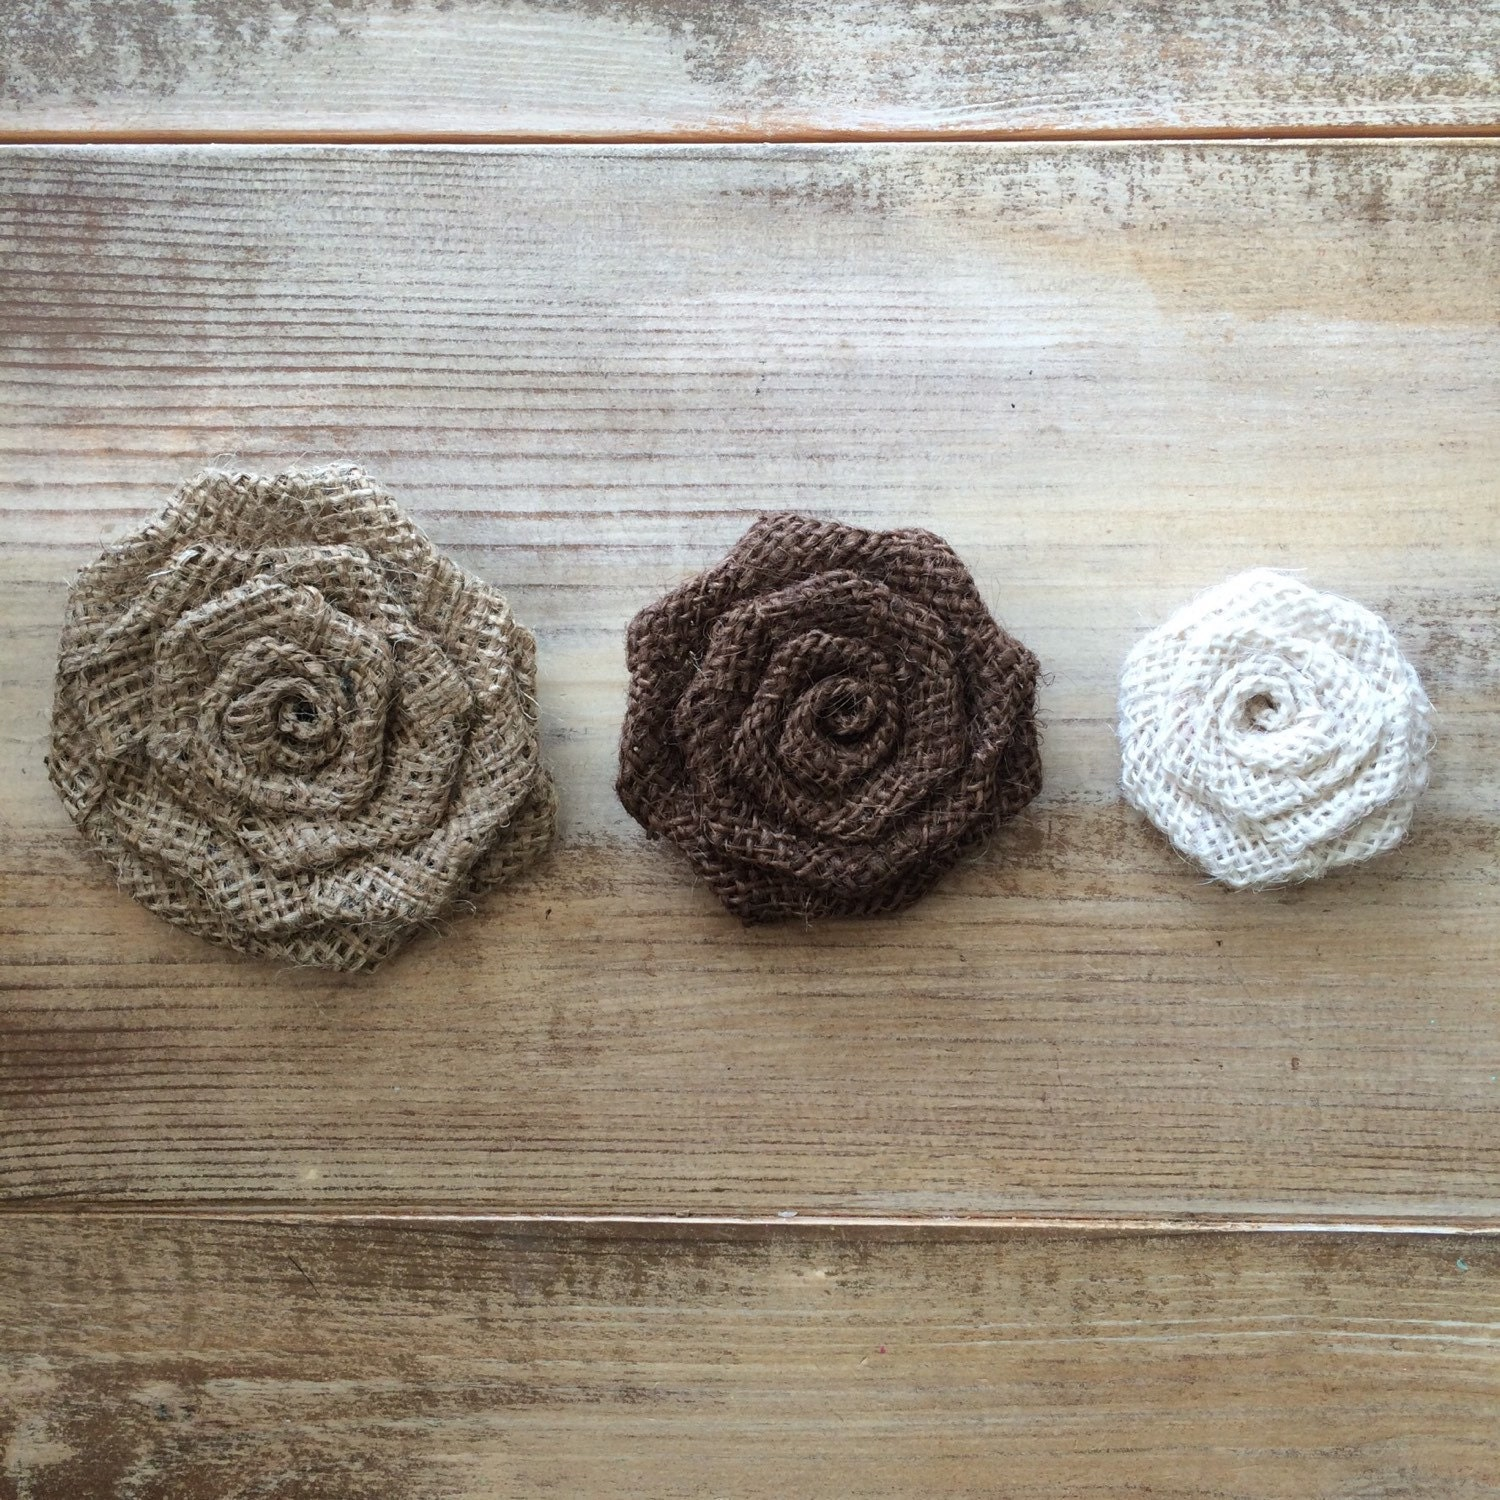 Set Of 50 Burlap Rosettes 3 5 Large 3 Colors Available Weddings Country Folk Rustic Large Fabric Flowers Primitive